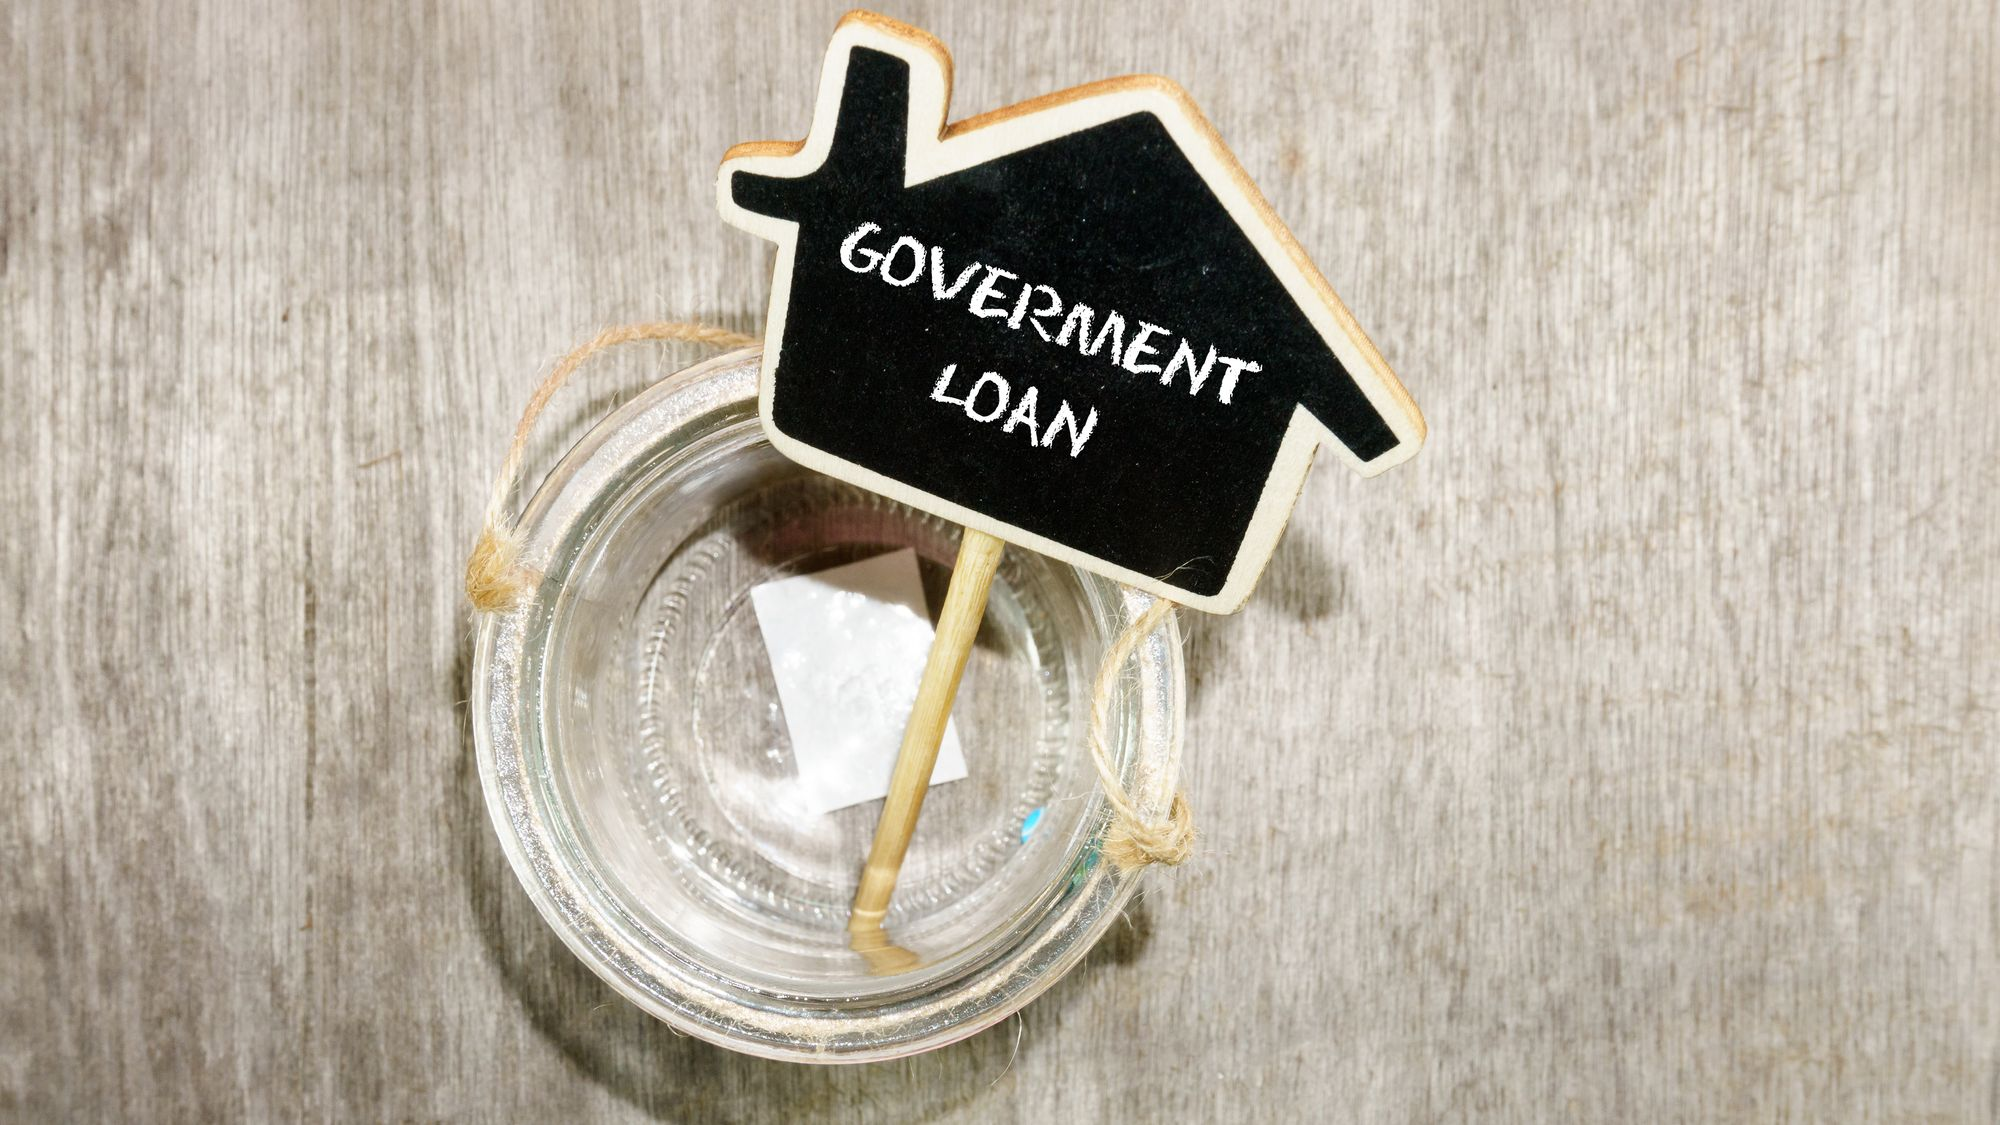 How To Get Small Business Loan From Government?